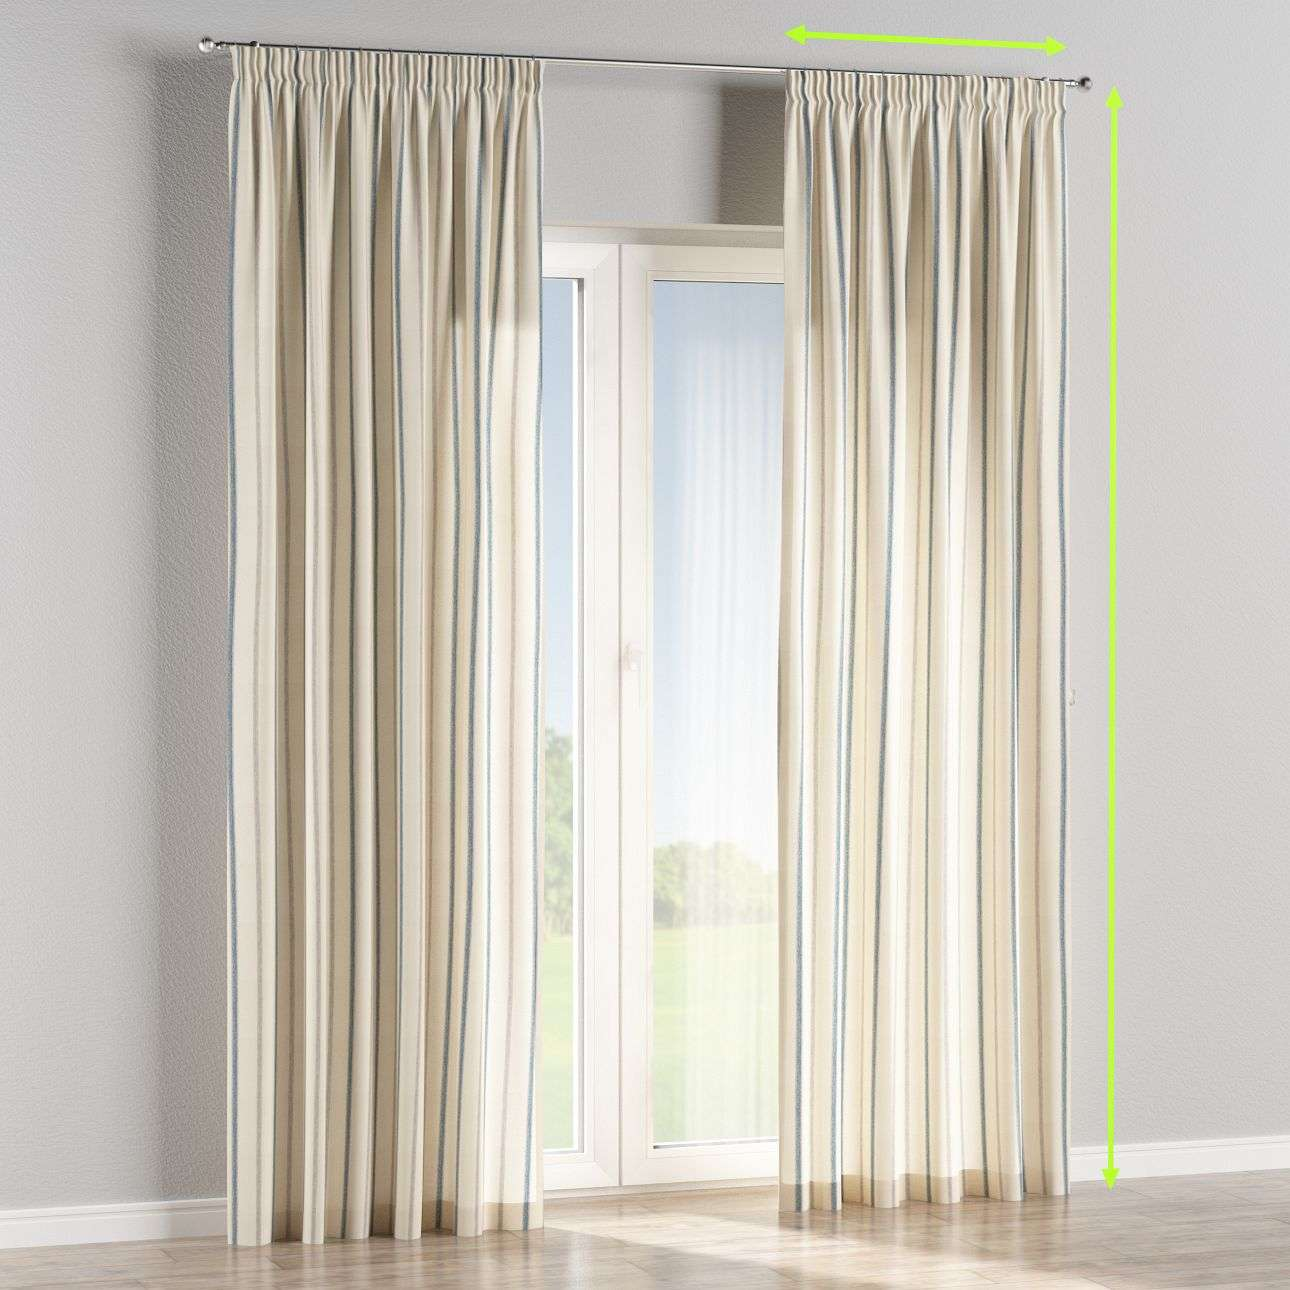 Pencil pleat lined curtains in collection Avinon, fabric: 129-66